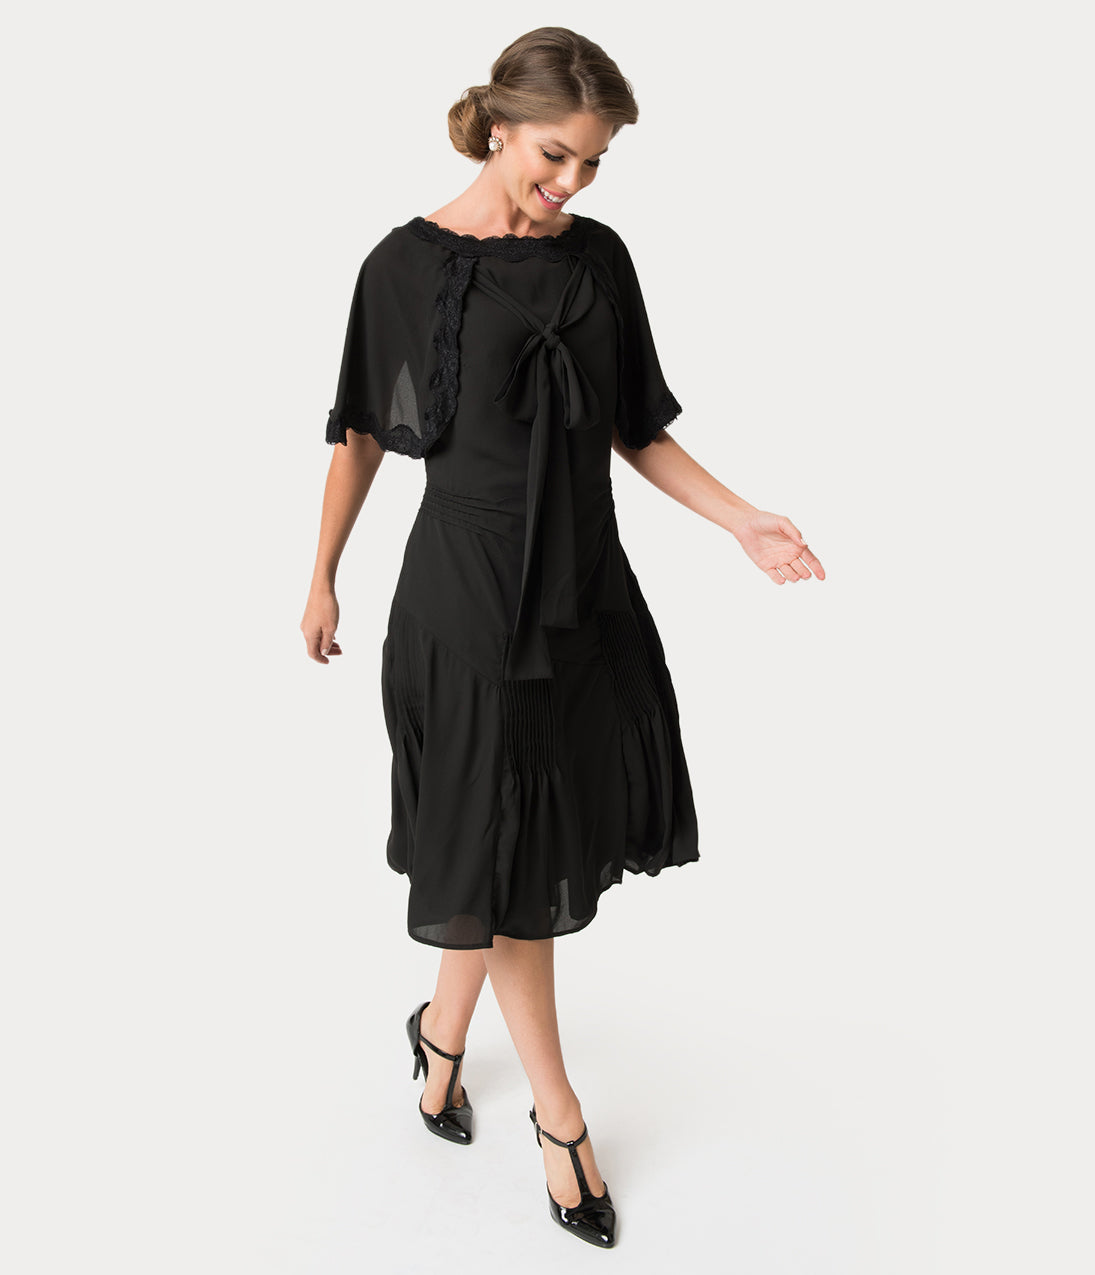 1930s Dresses | 30s Art Deco Dress Unique Vintage 1930S Style Black Dewitt Day Flapper Dress $40.00 AT vintagedancer.com